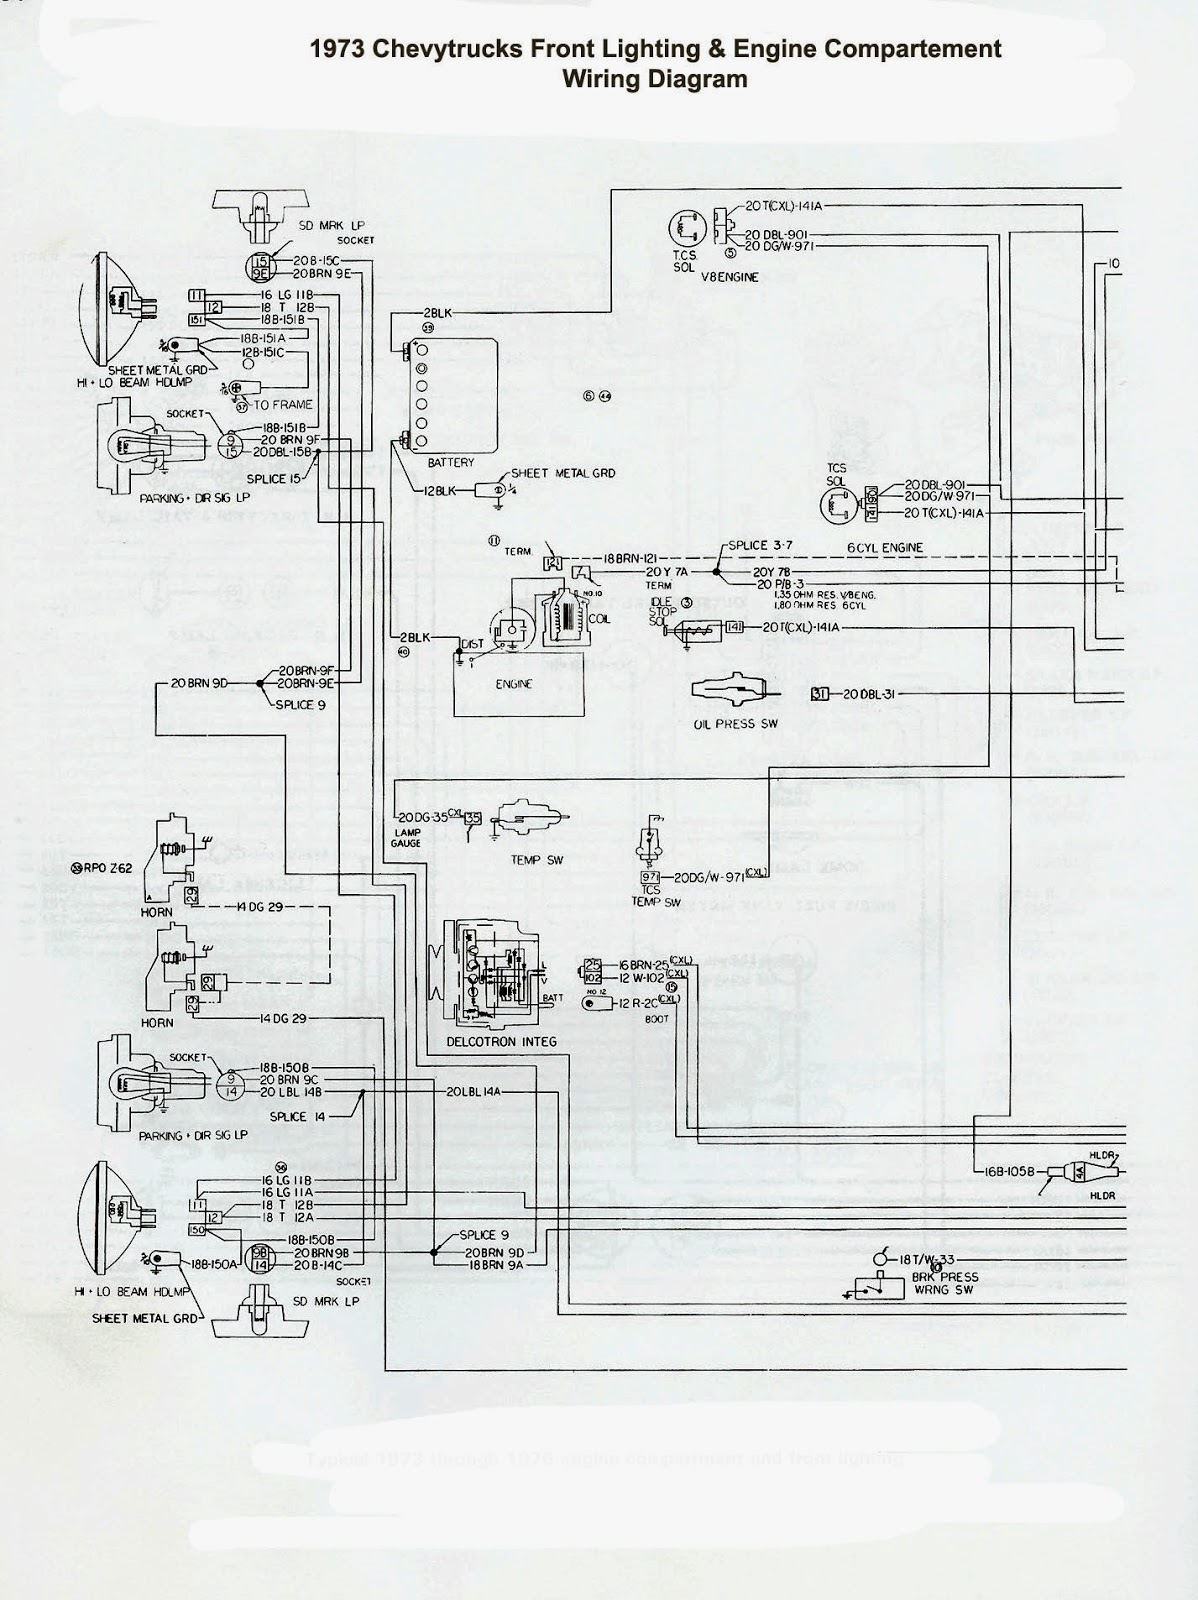 july 2014 electrical winding wiring diagrams rh windingdiagrams blogspot com 1987 Camaro Wiring Diagram 91 Chevy Camaro Wiring Diagram